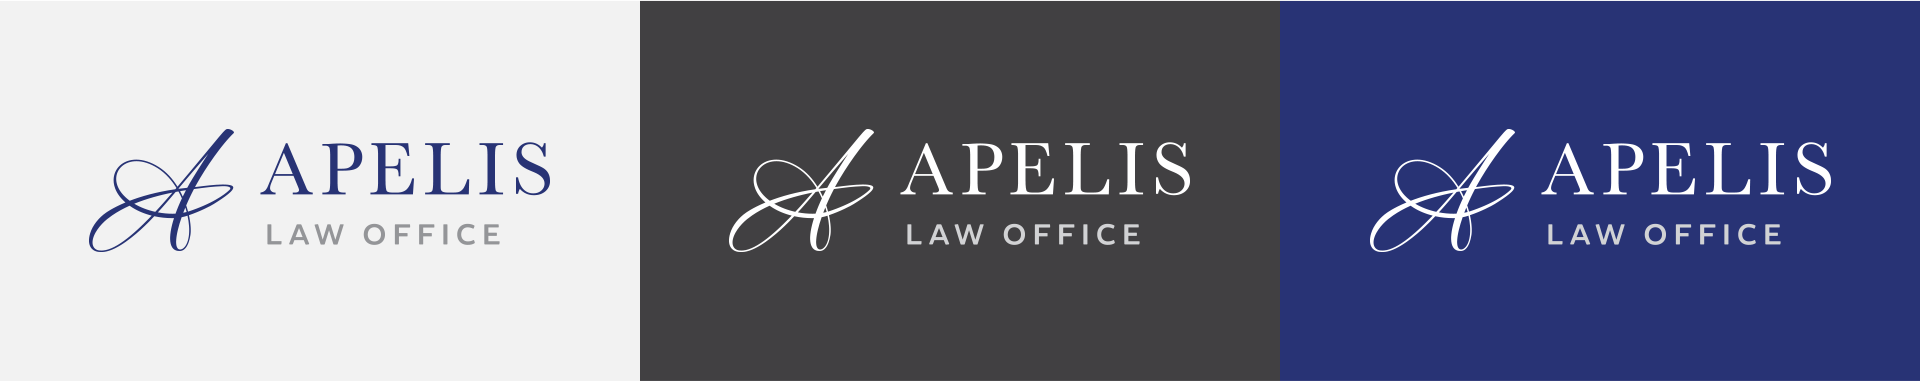 Horizontal orientation of Apelis Law Office logos on different color backgrounds